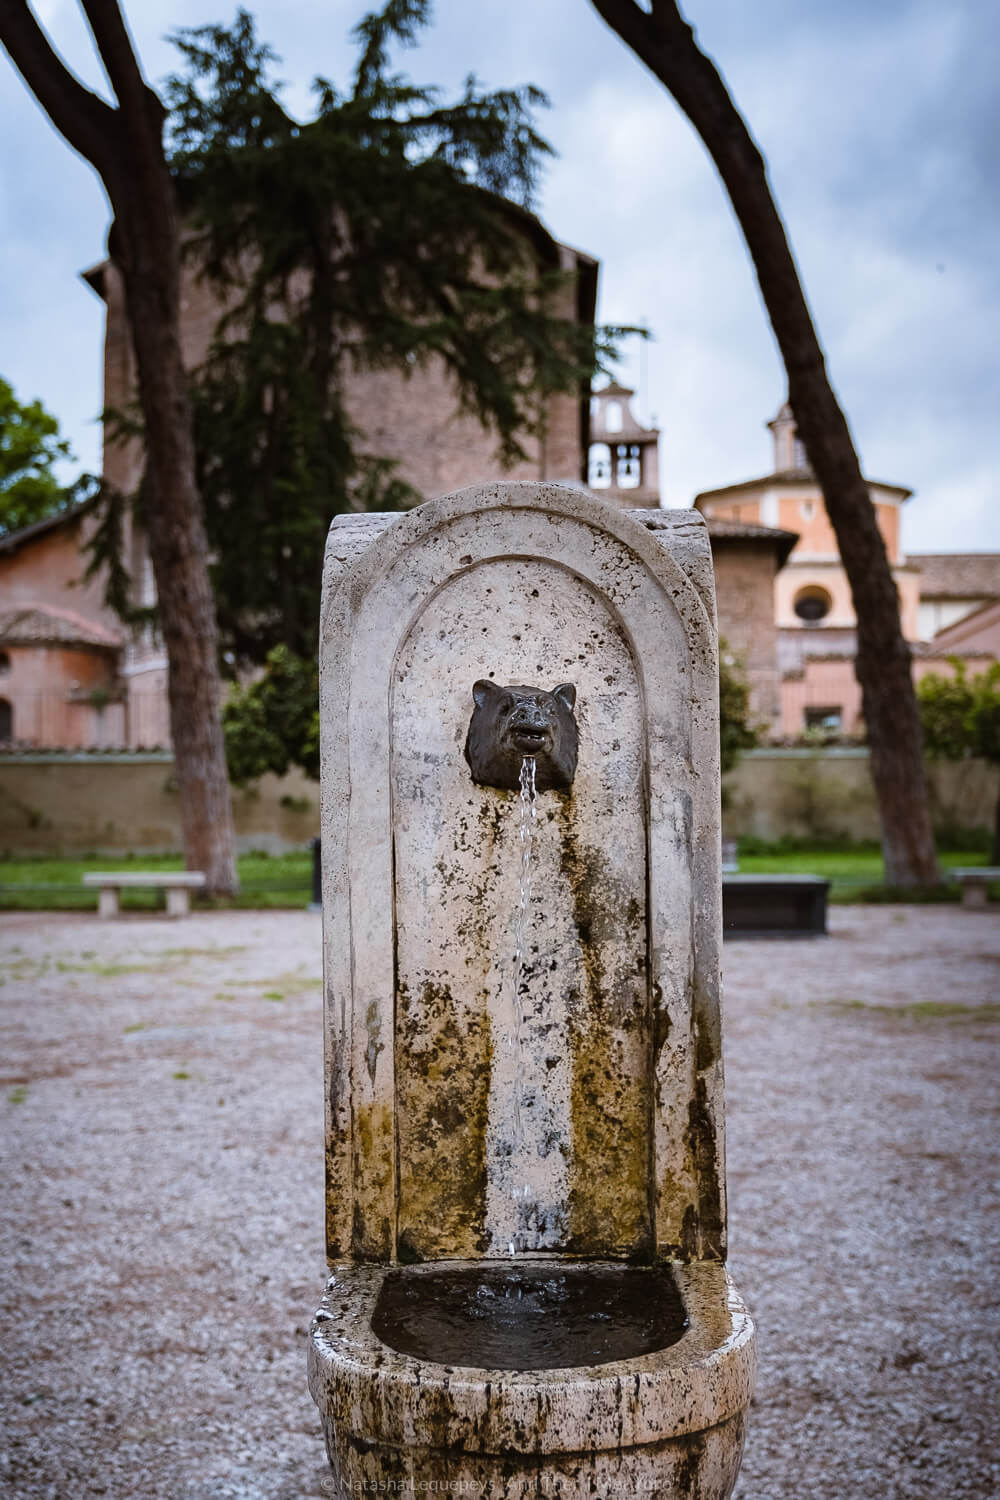 """Water fountain in the Orange Gardens in Rome, Italy. Travel photography and guide by © Natasha Lequepeys for """"And Then I Met Yoko"""". #rome #italy #travelblog #travelphotography"""